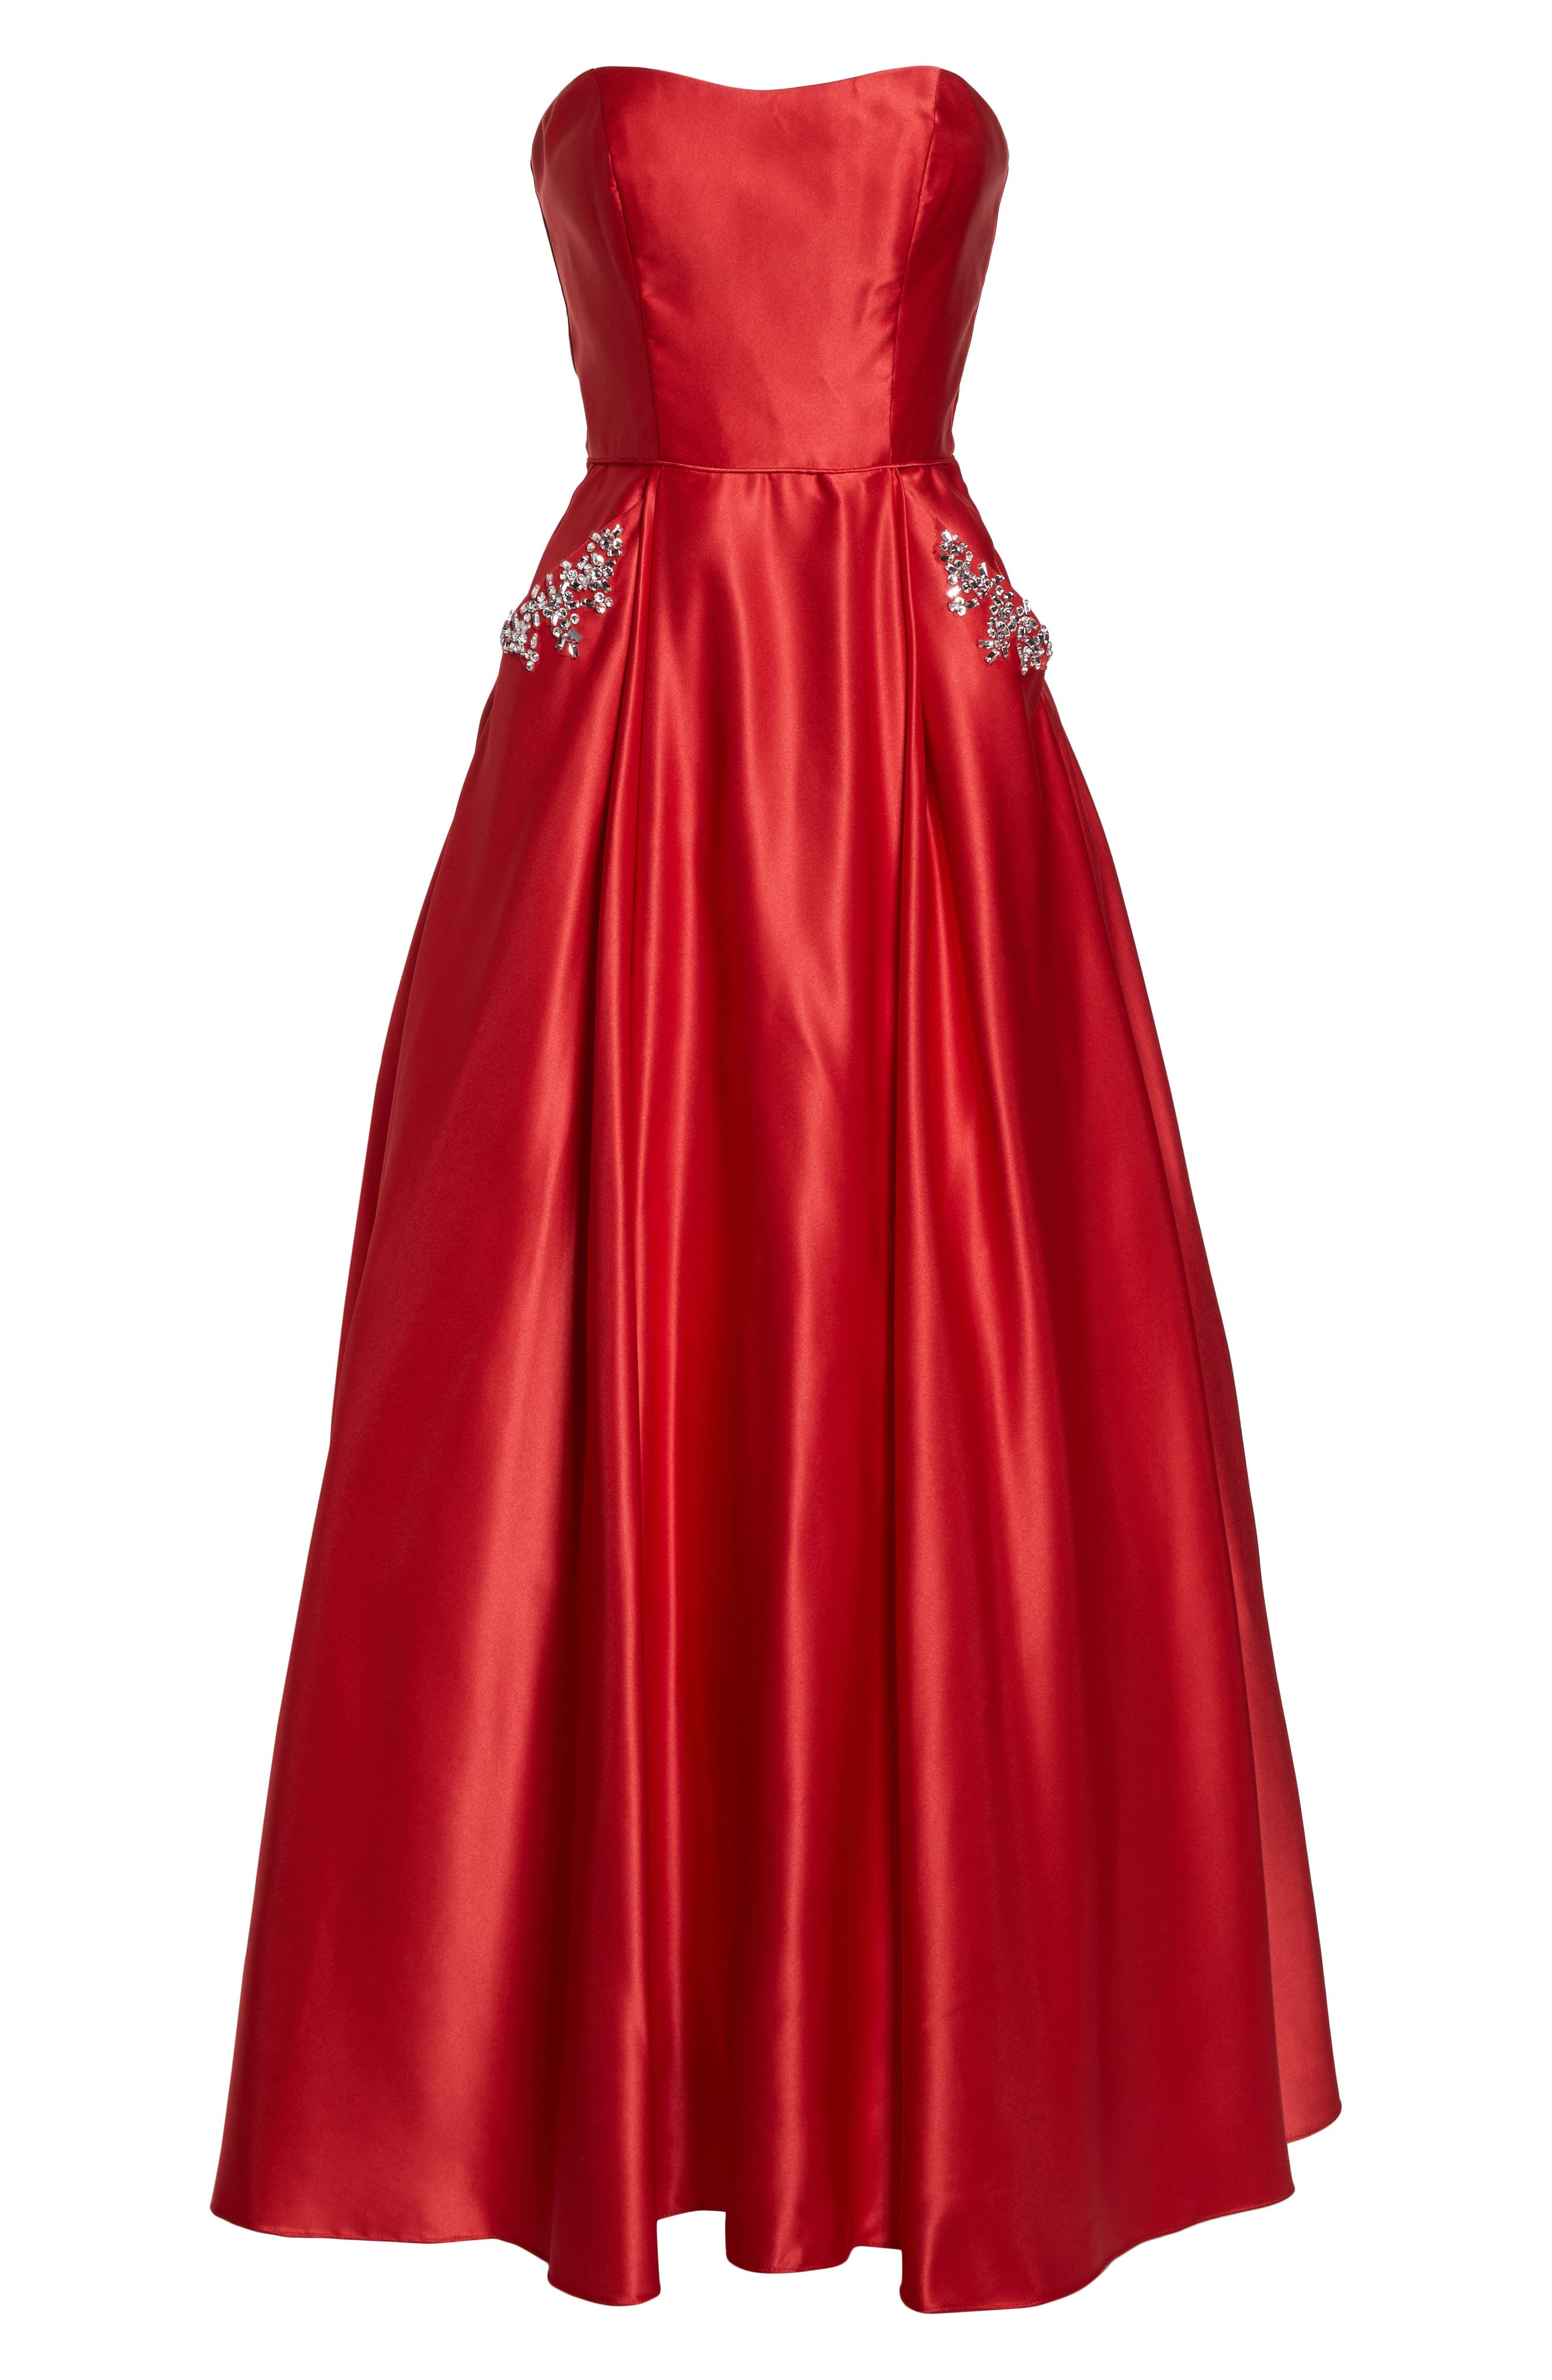 Embellished Strapless Ballgown,                             Alternate thumbnail 6, color,                             Red